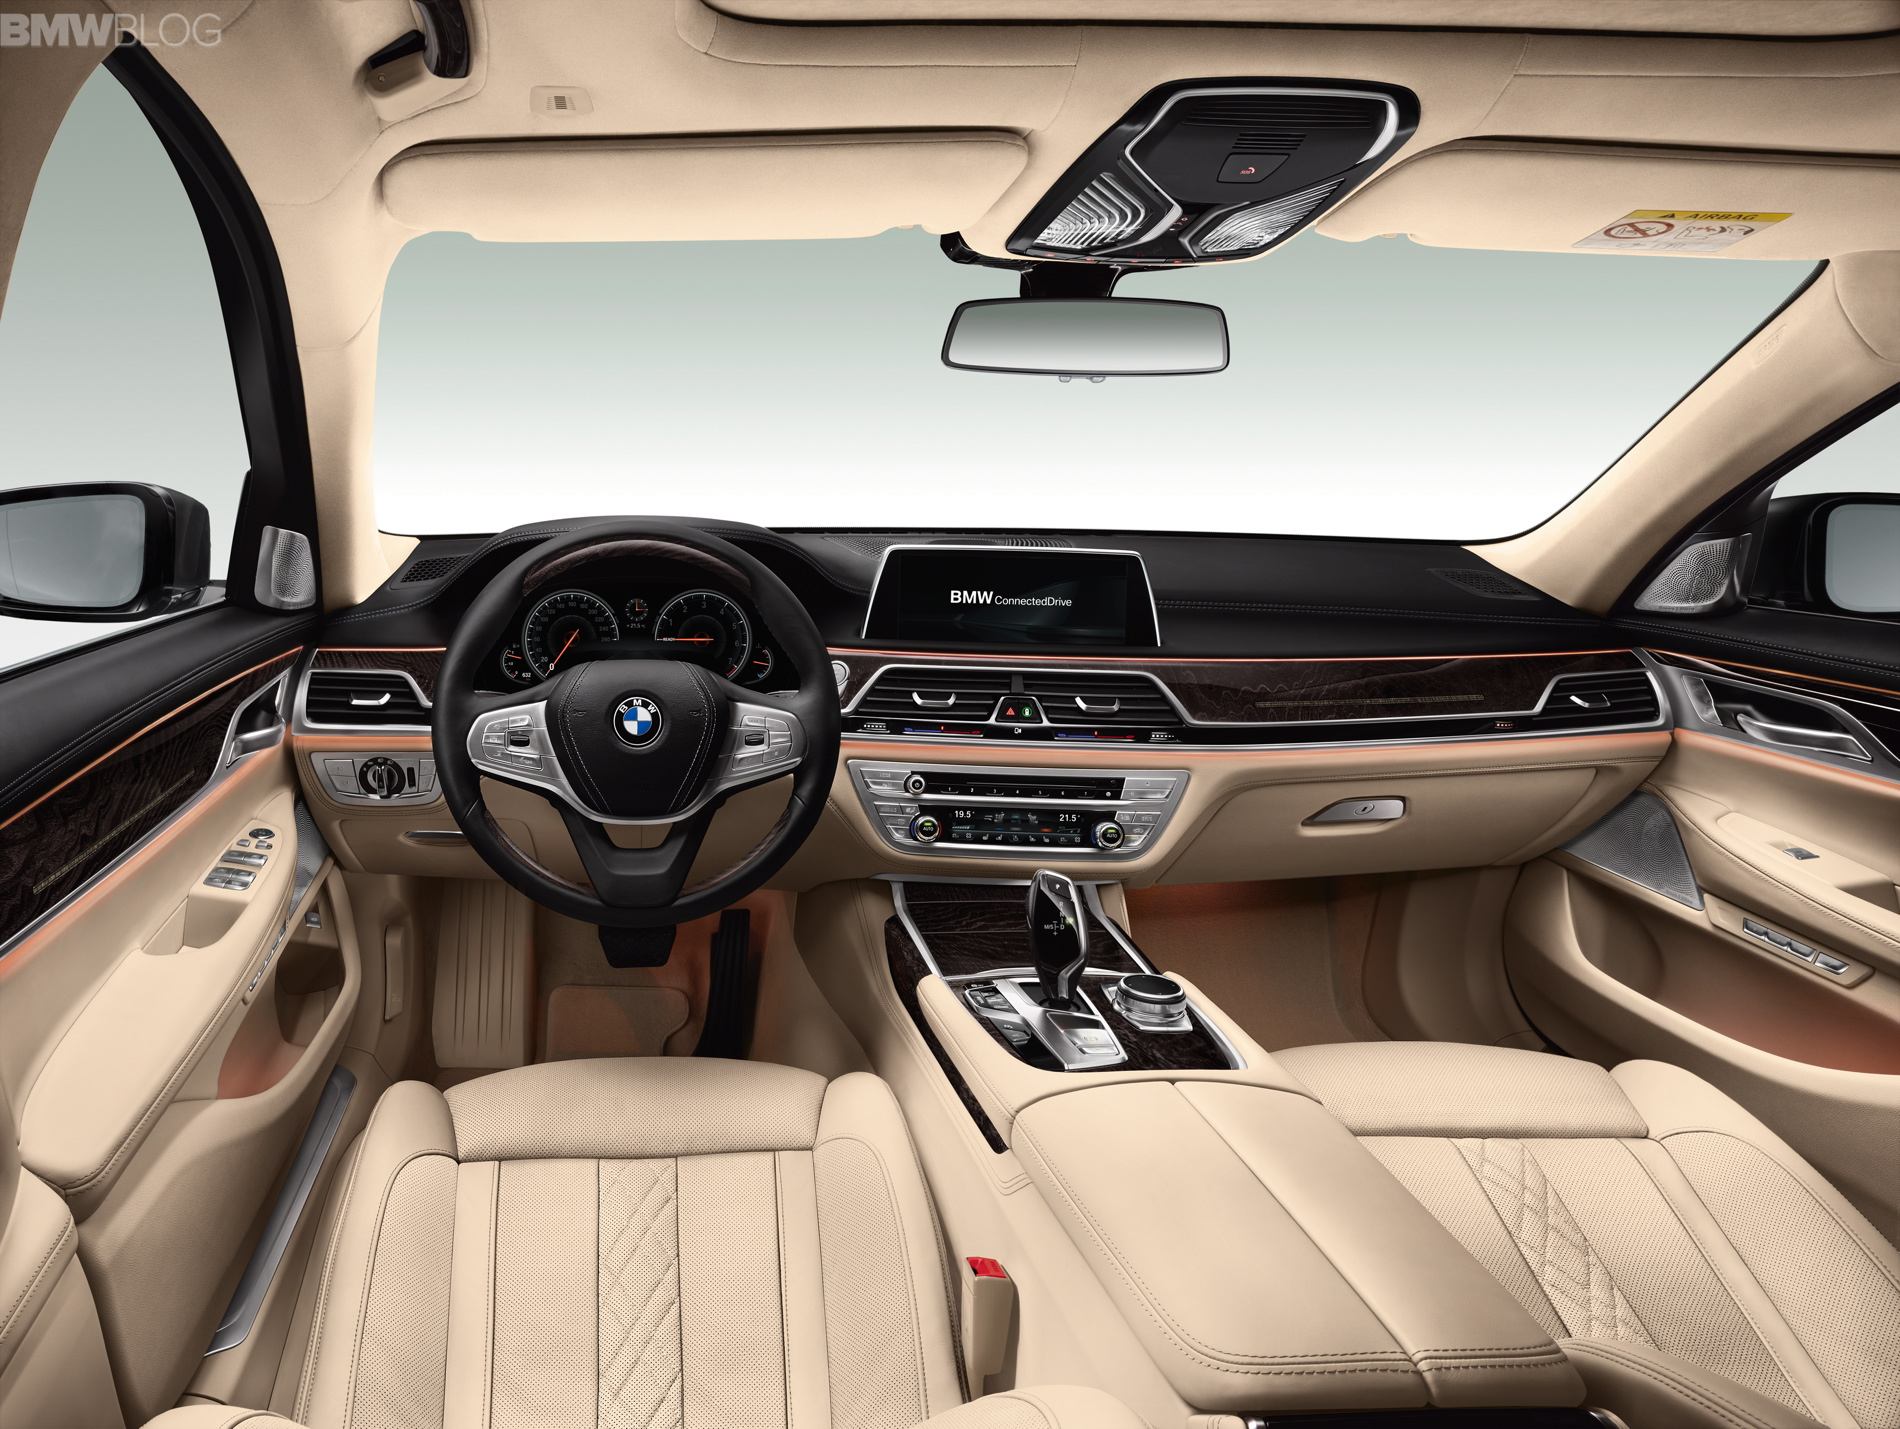 2016-bmw-7-series-interior-images-1900x1200-13